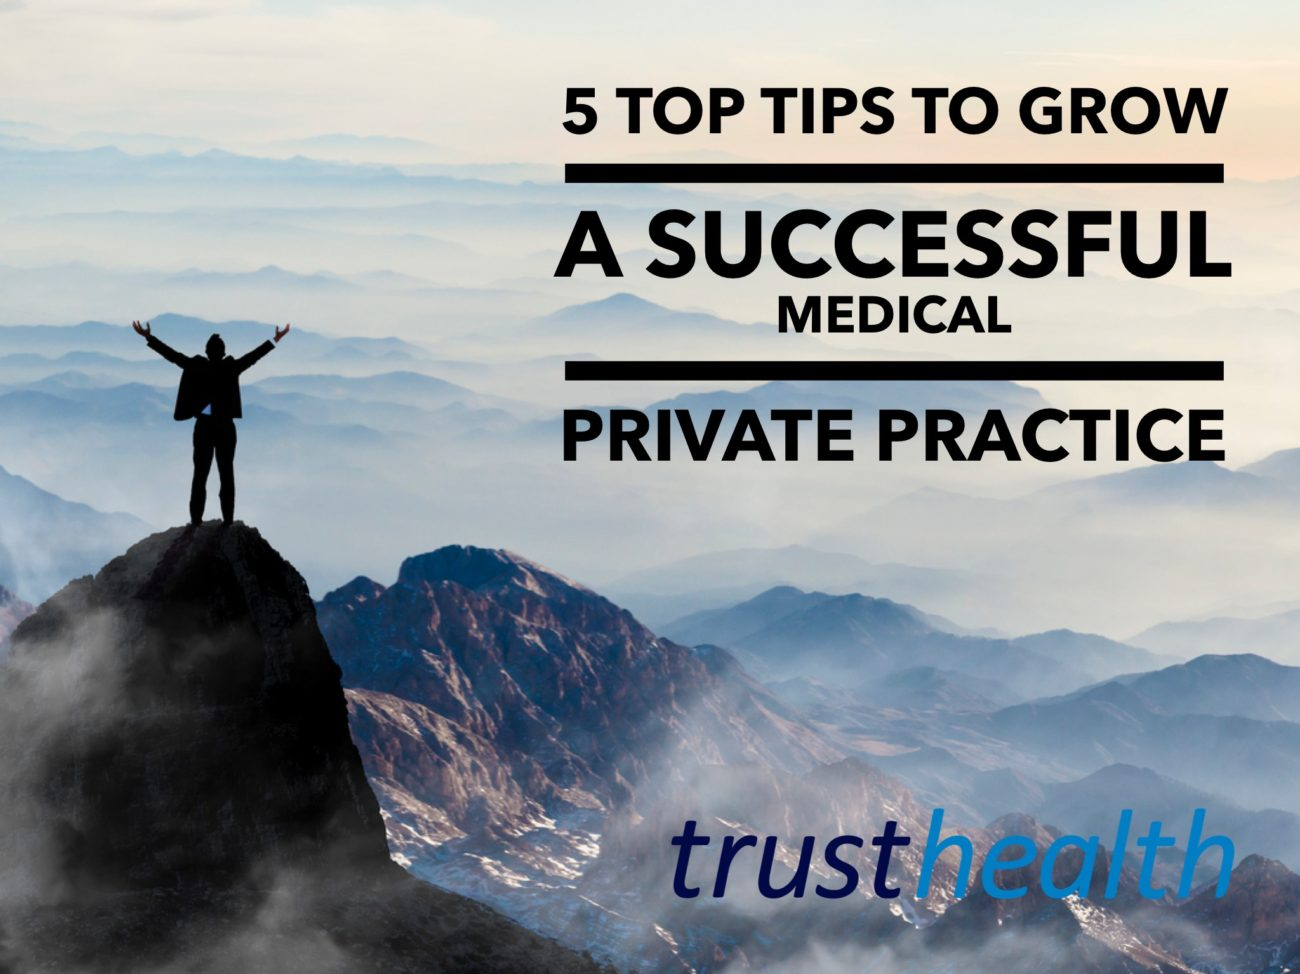 5 Top Tips to grow a successful Private Practice